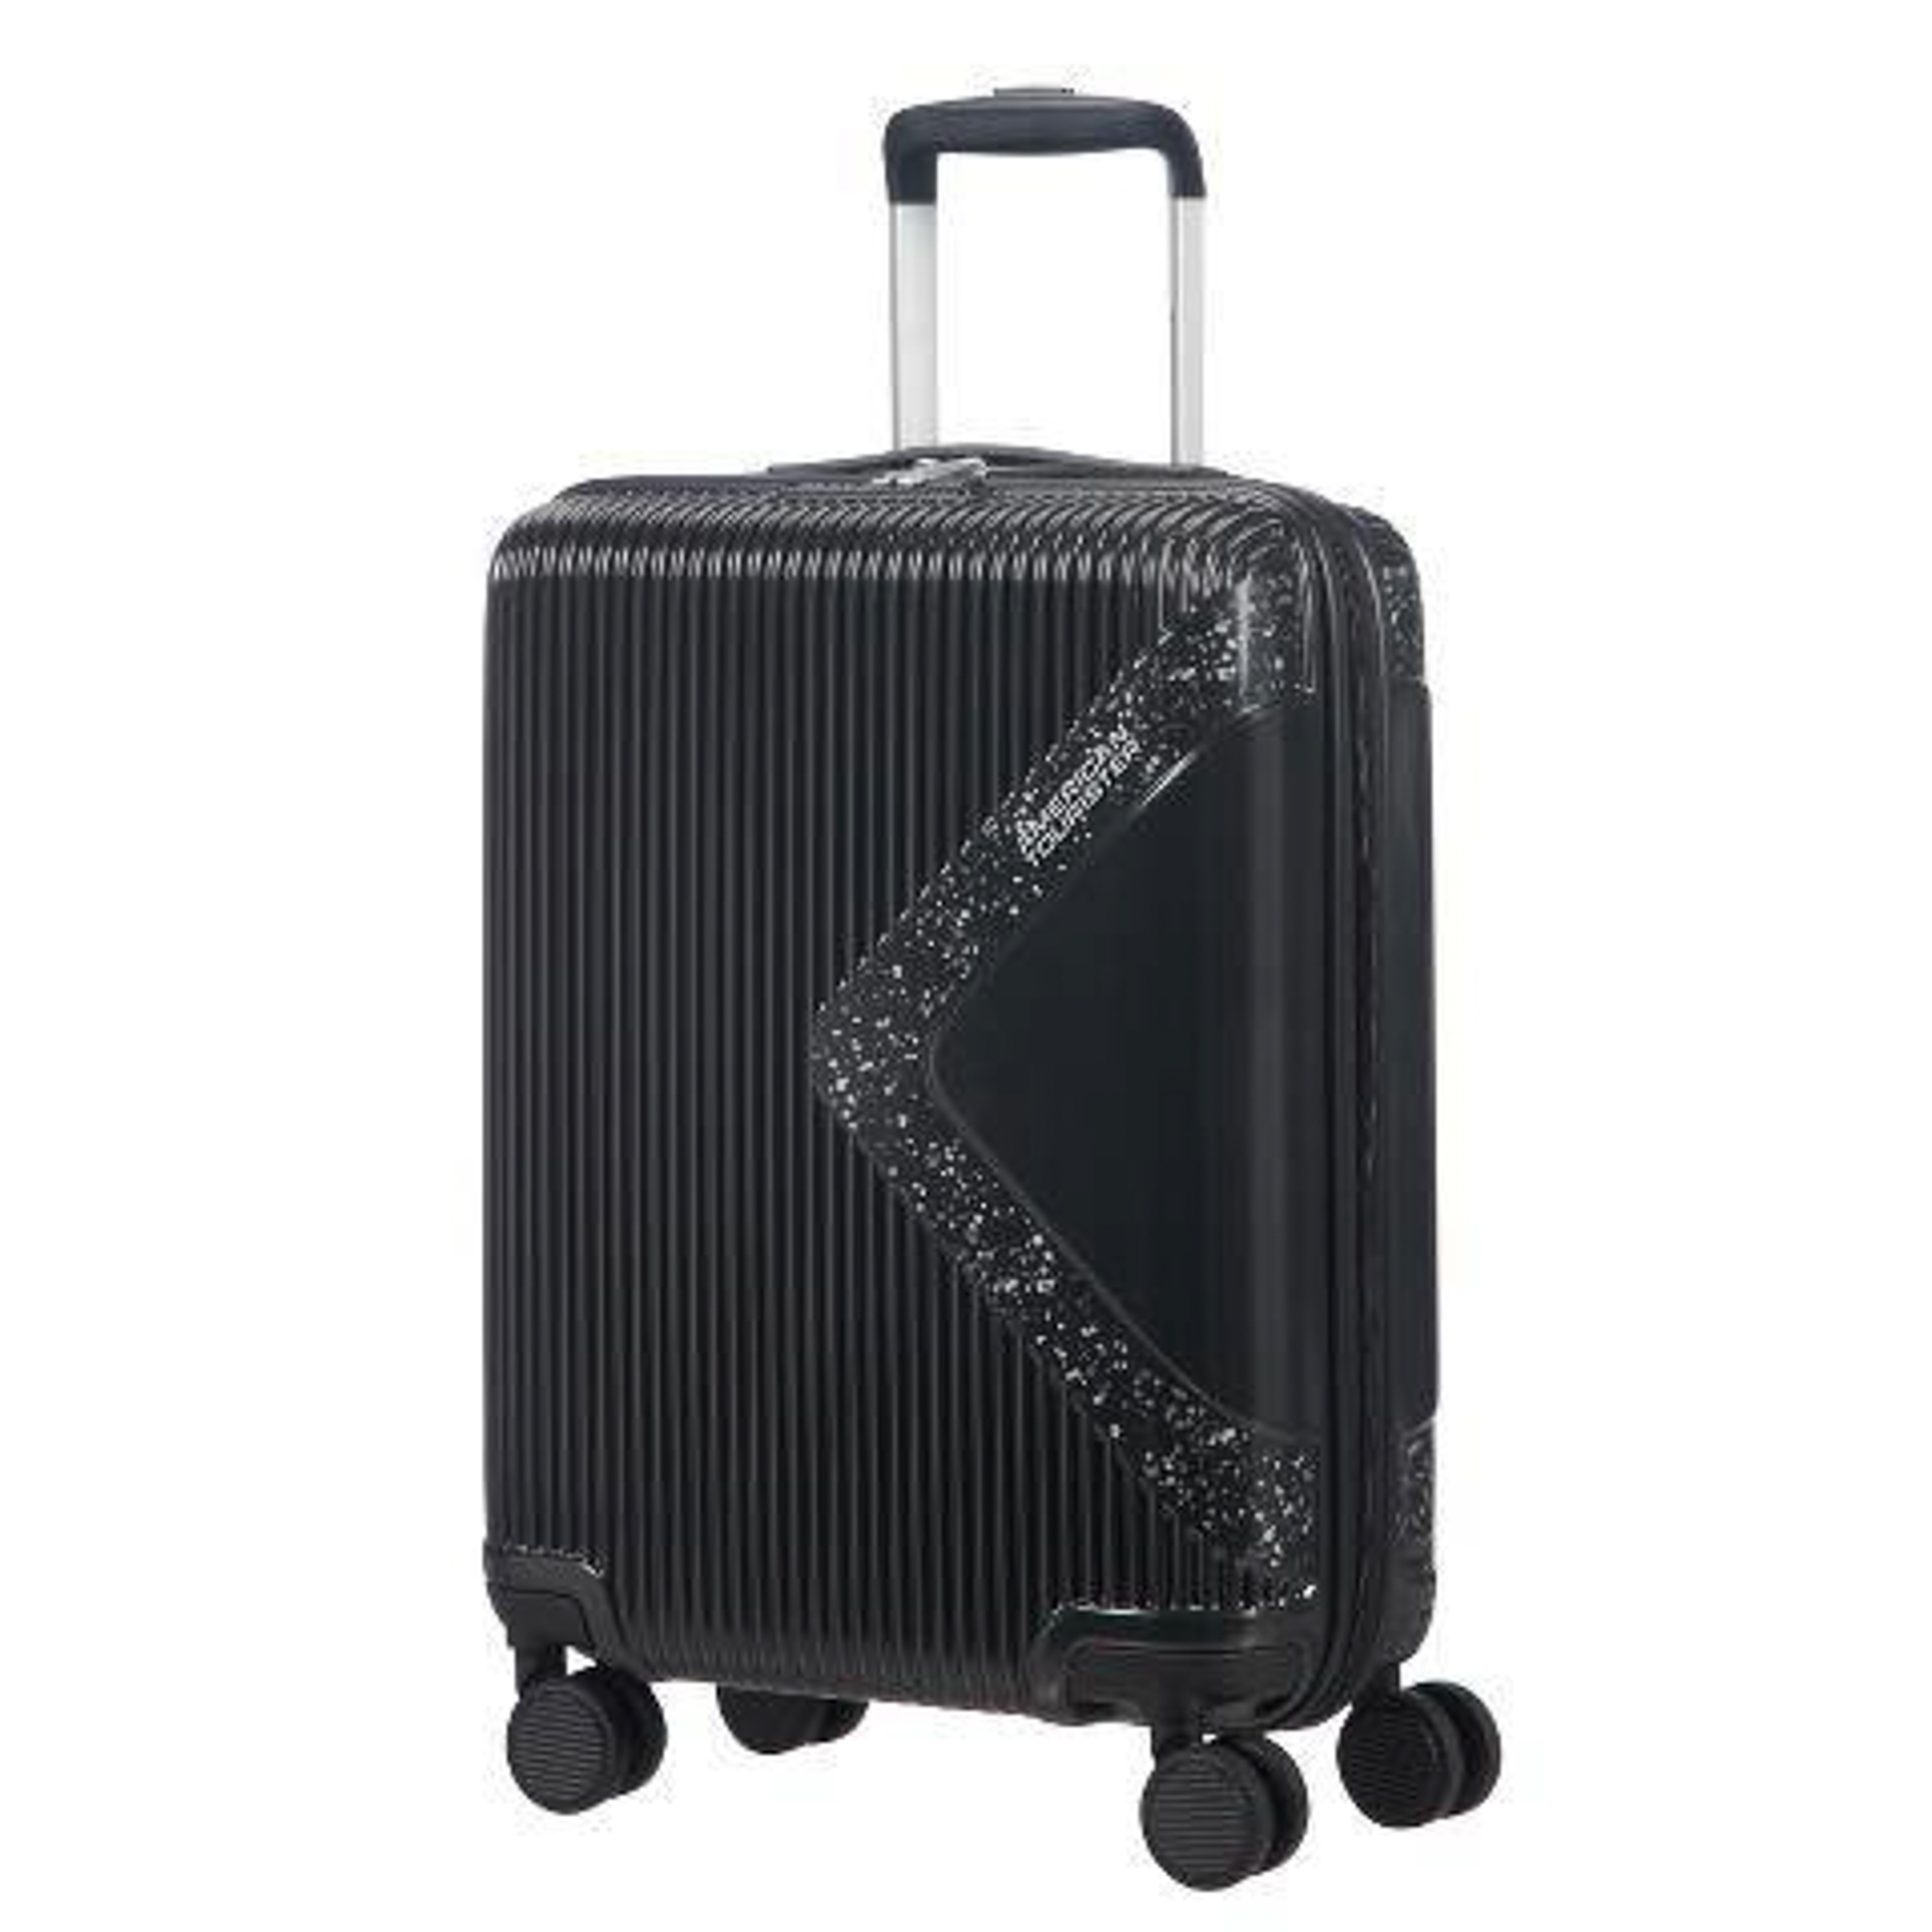 Чемодан American Tourister Modern dream черный с блеском S